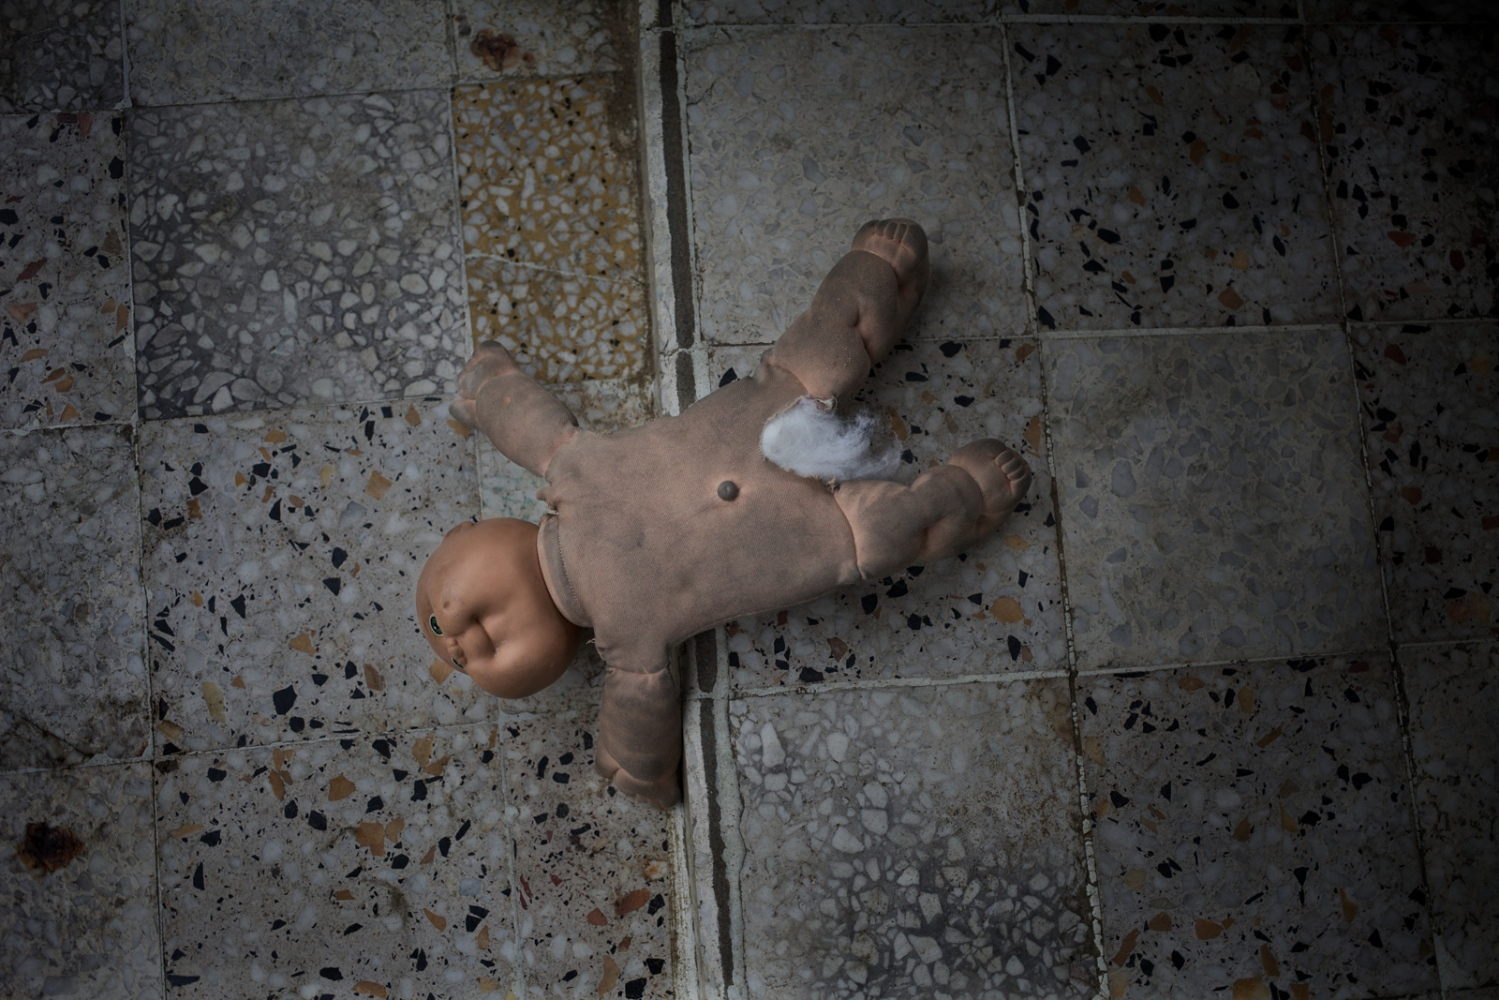 Monrovia, Liberia. July 2013. Doll left on the floor in a safe house for underage survivors of abuse and gender-based violence run by THINK Liberia. Sexual violence is a big problem and according to a recent Doctors Without Borders report, 92 percent of Liberia's rape victims seeking treatment are under the age of 18, an estimated 40 percent of which are under 12 years old. Ten percent are younger than five. It is not uncommon for students to be subject to sexual harassment.